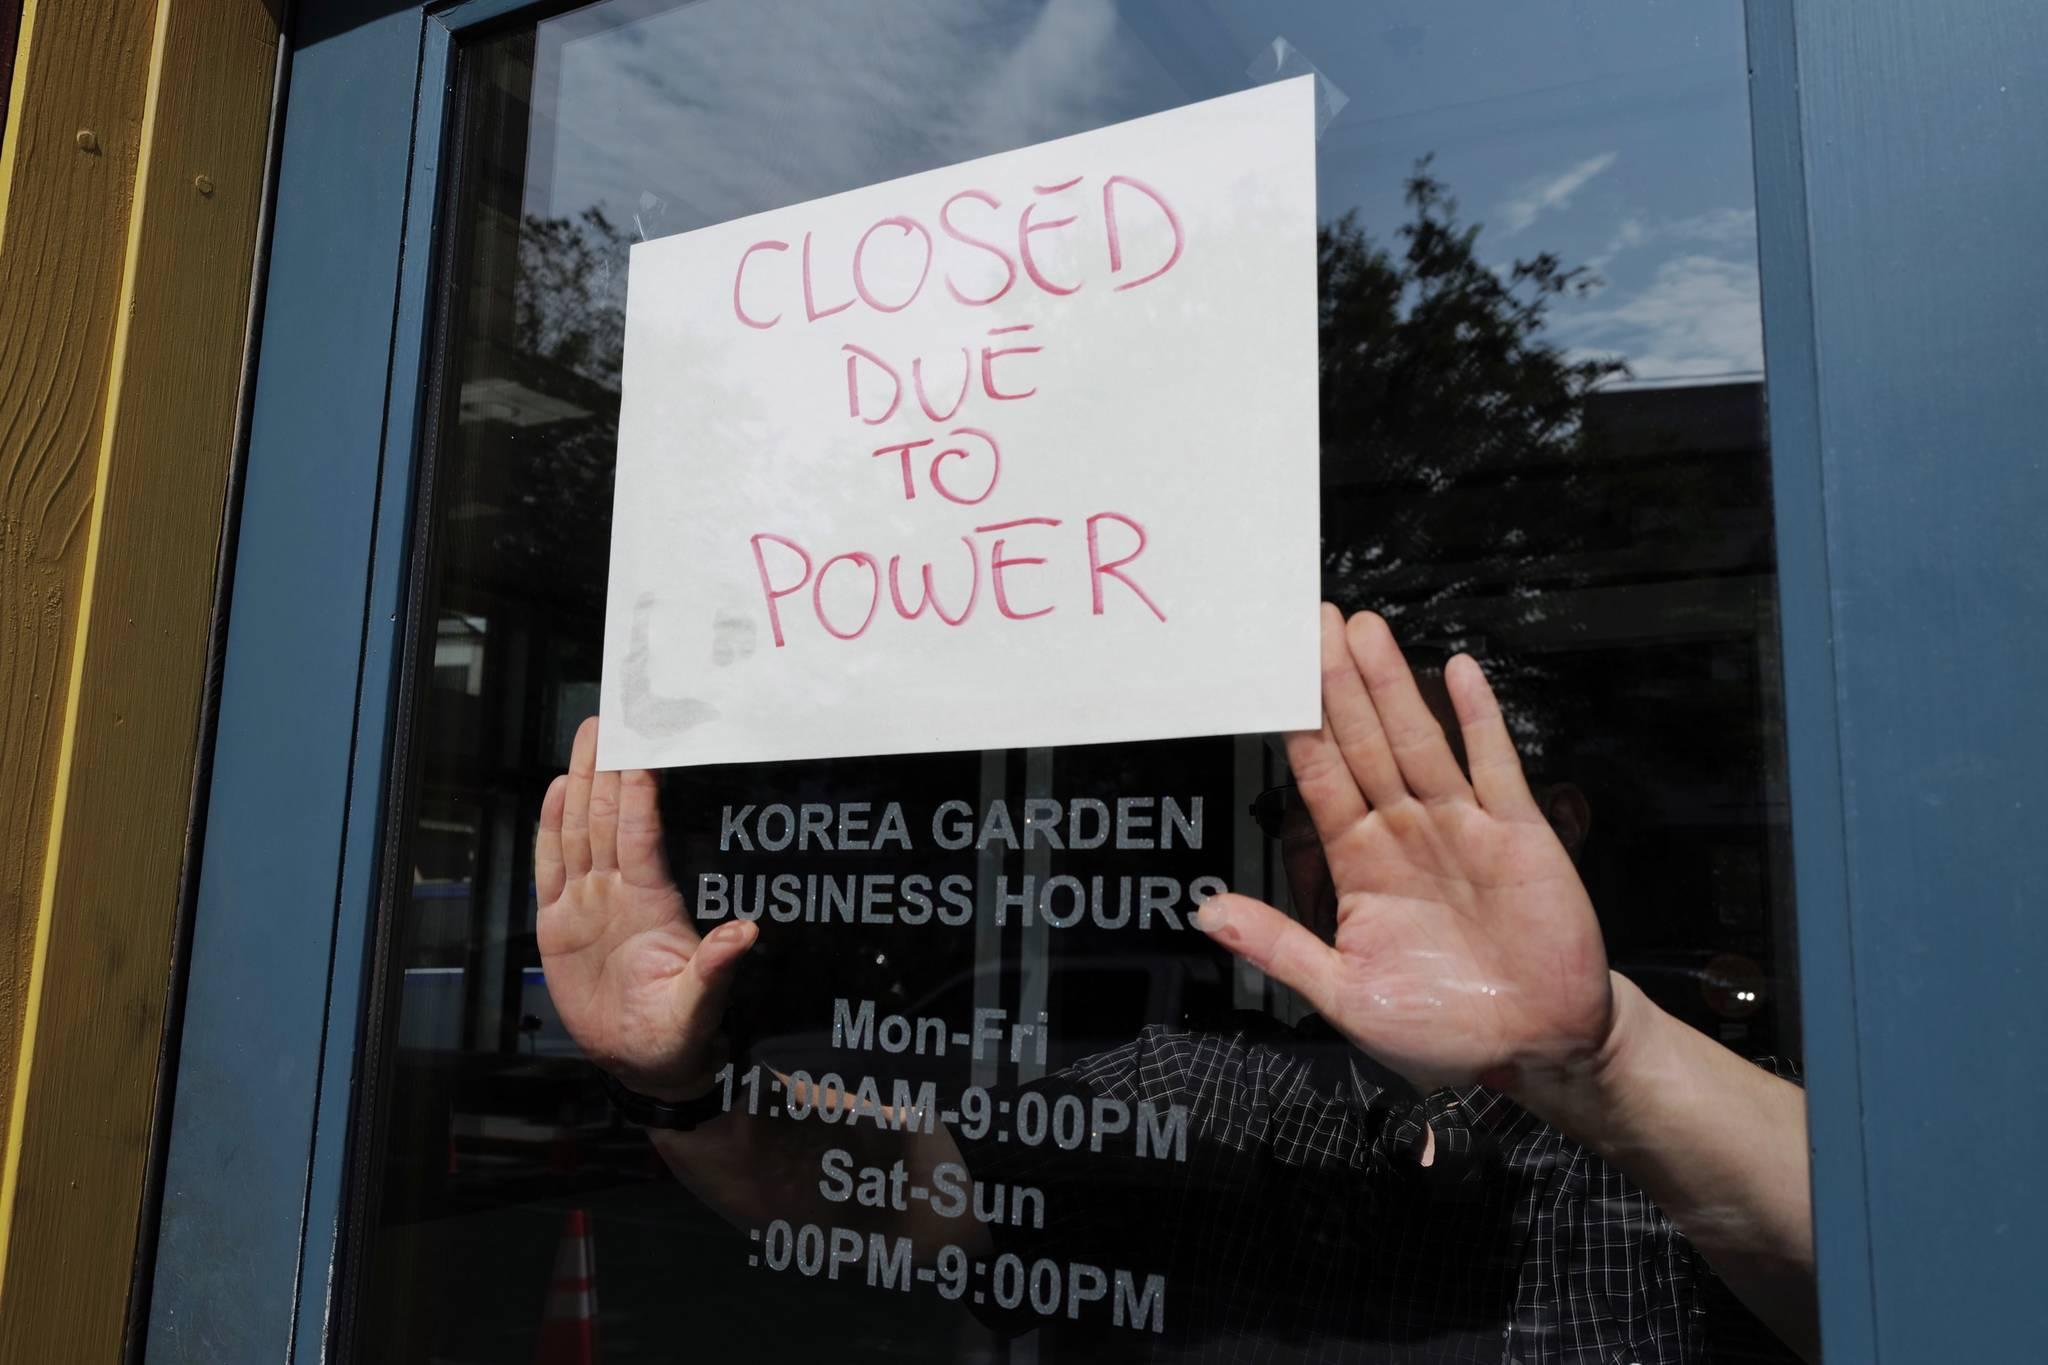 Steven DeVoss, manager of Korea Garden on Front Street, puts up a sign to closed his business before noon on Wednesday, July 31, 2019. (Michael Penn | Juneau Empire)